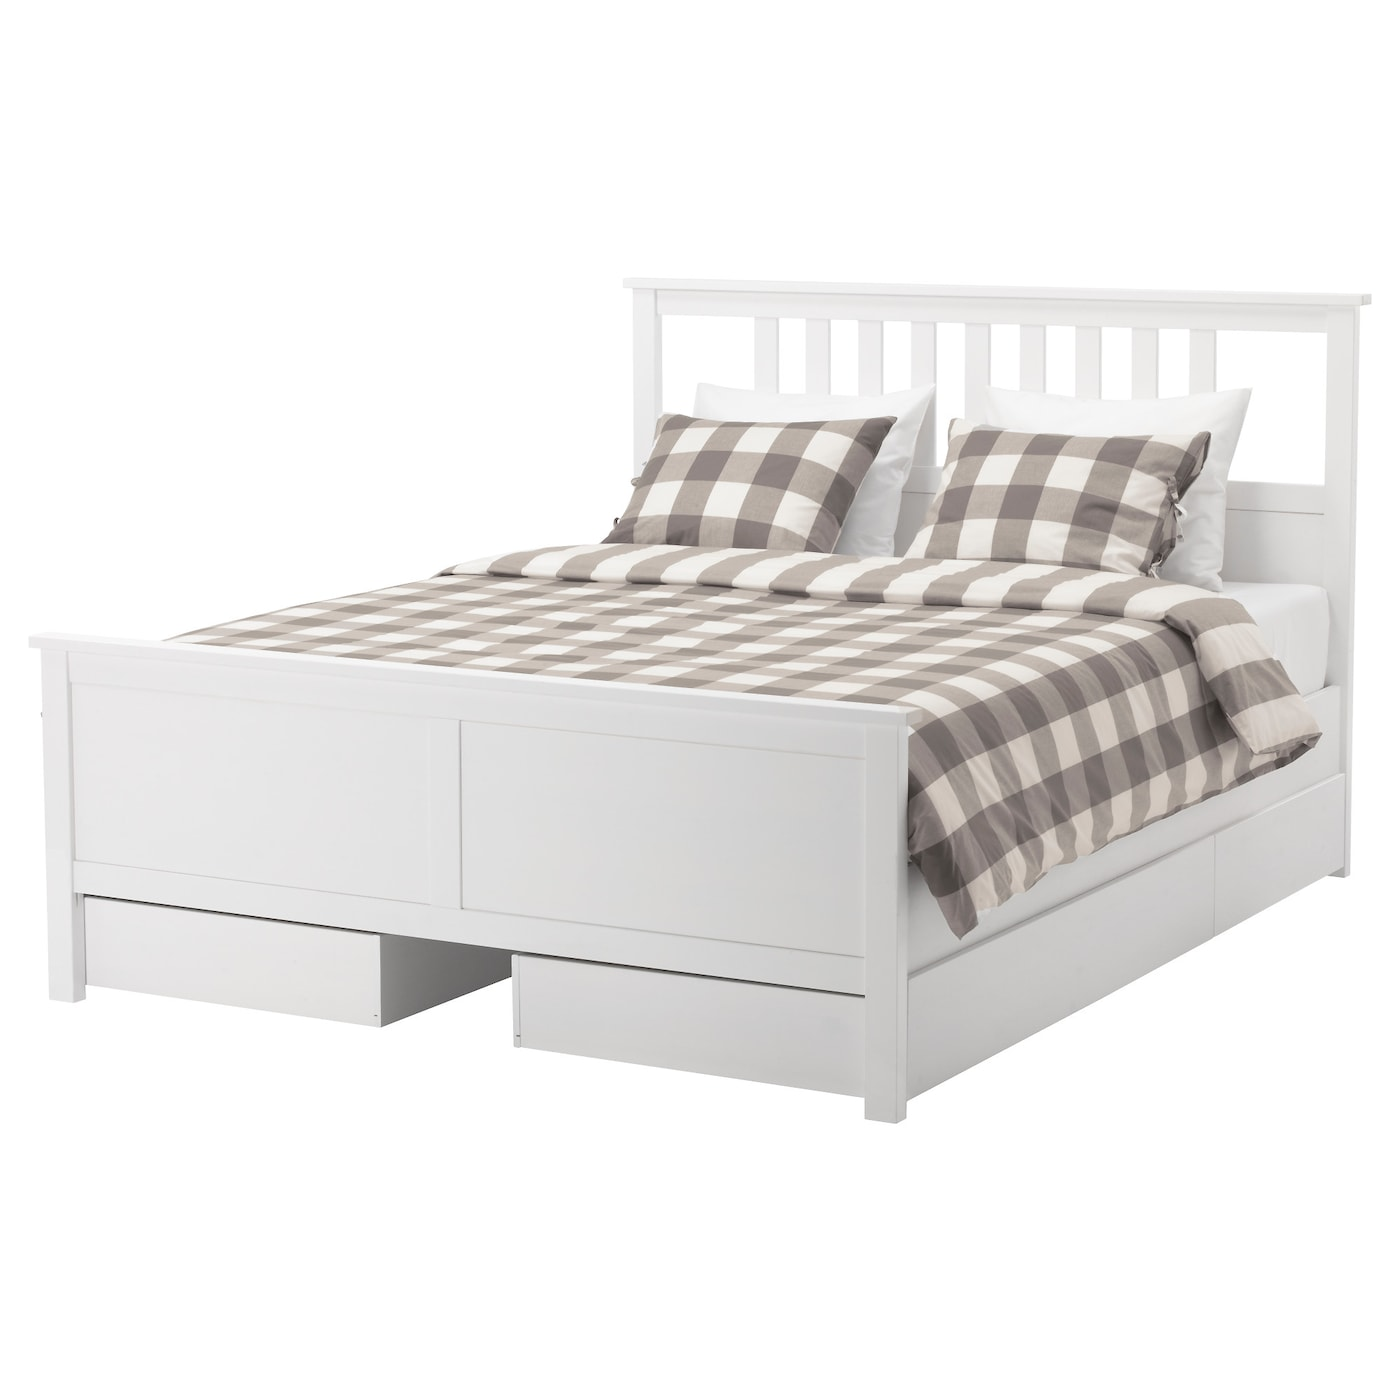 hemnes bed frame with 4 storage boxes white stain lur y standard double ikea. Black Bedroom Furniture Sets. Home Design Ideas